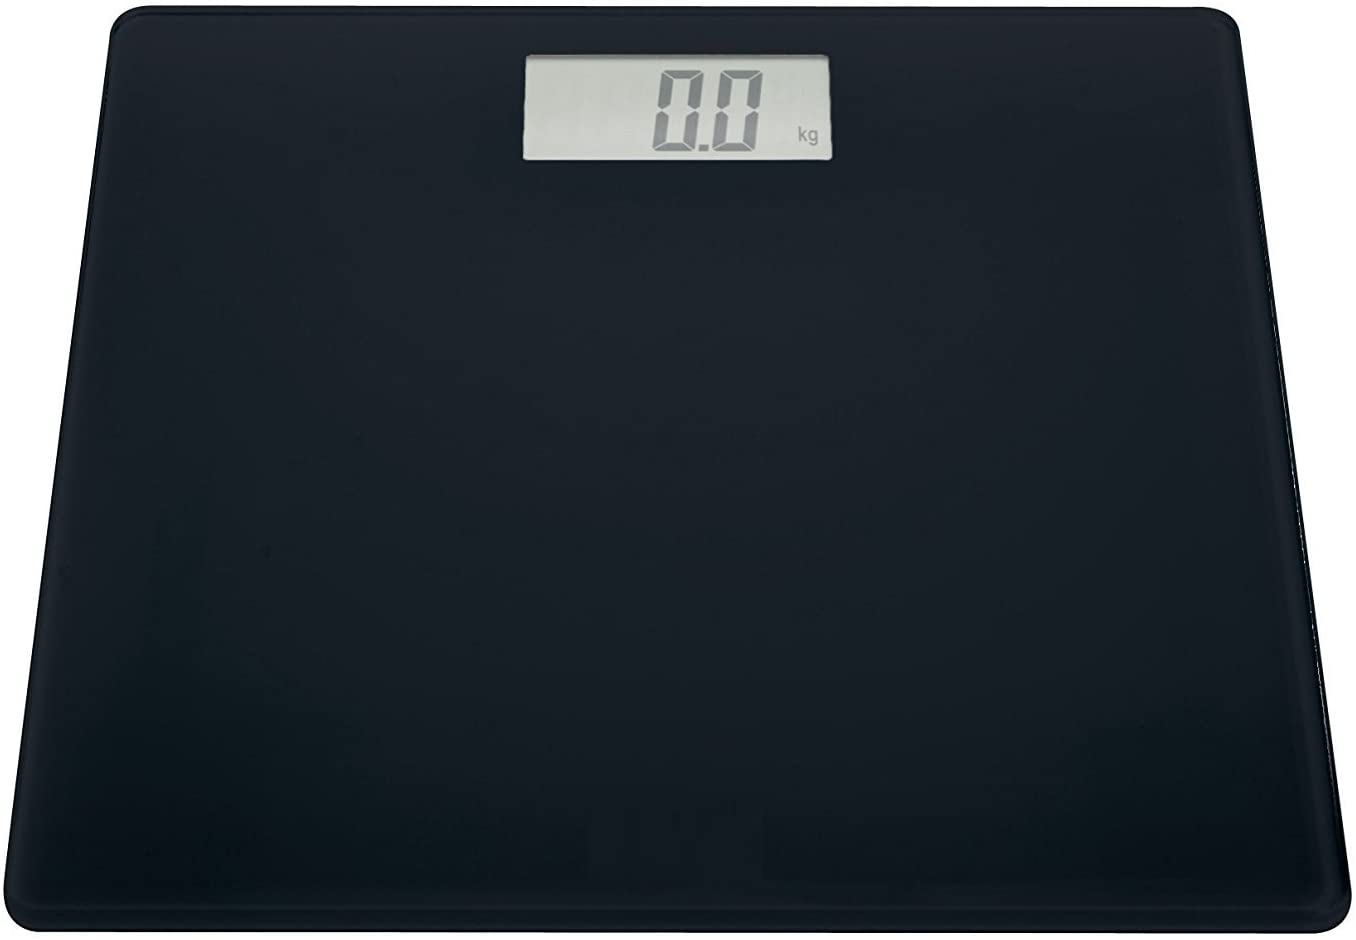 Precision Digital Bath Scale (400 Lbs Edition), in Tempered Glass with Step-on Activation